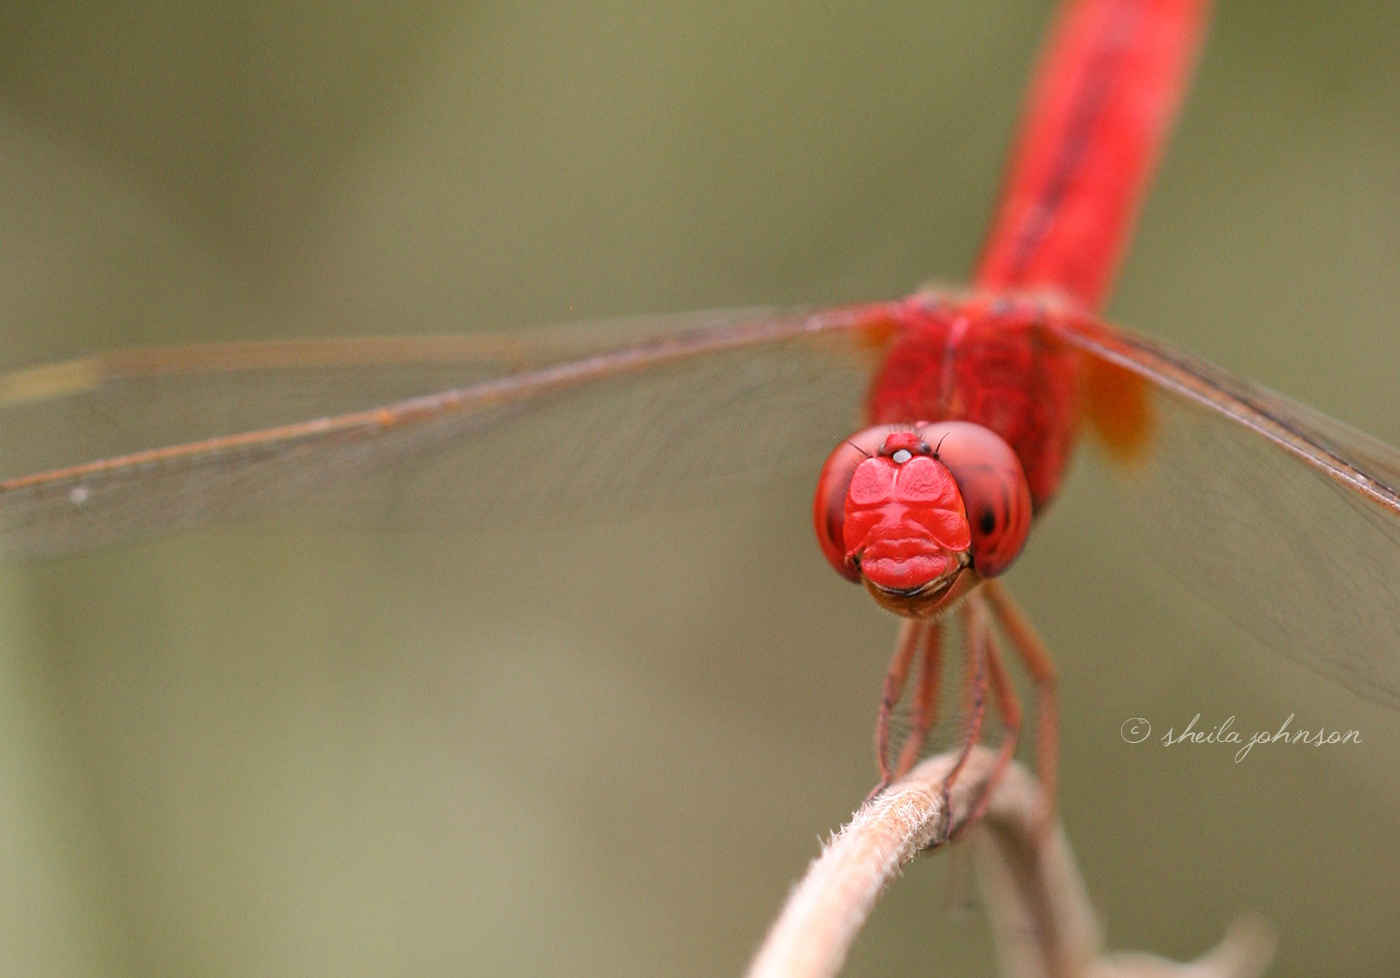 This Red Scarlet Skimmer, Also Known As A Crimson Darter, Dragonfly Appears To Know Just How Special He Is. This Image Is Available On Motivational Prints, Canvas, And Other Home Decor And Office Accent Products Here.